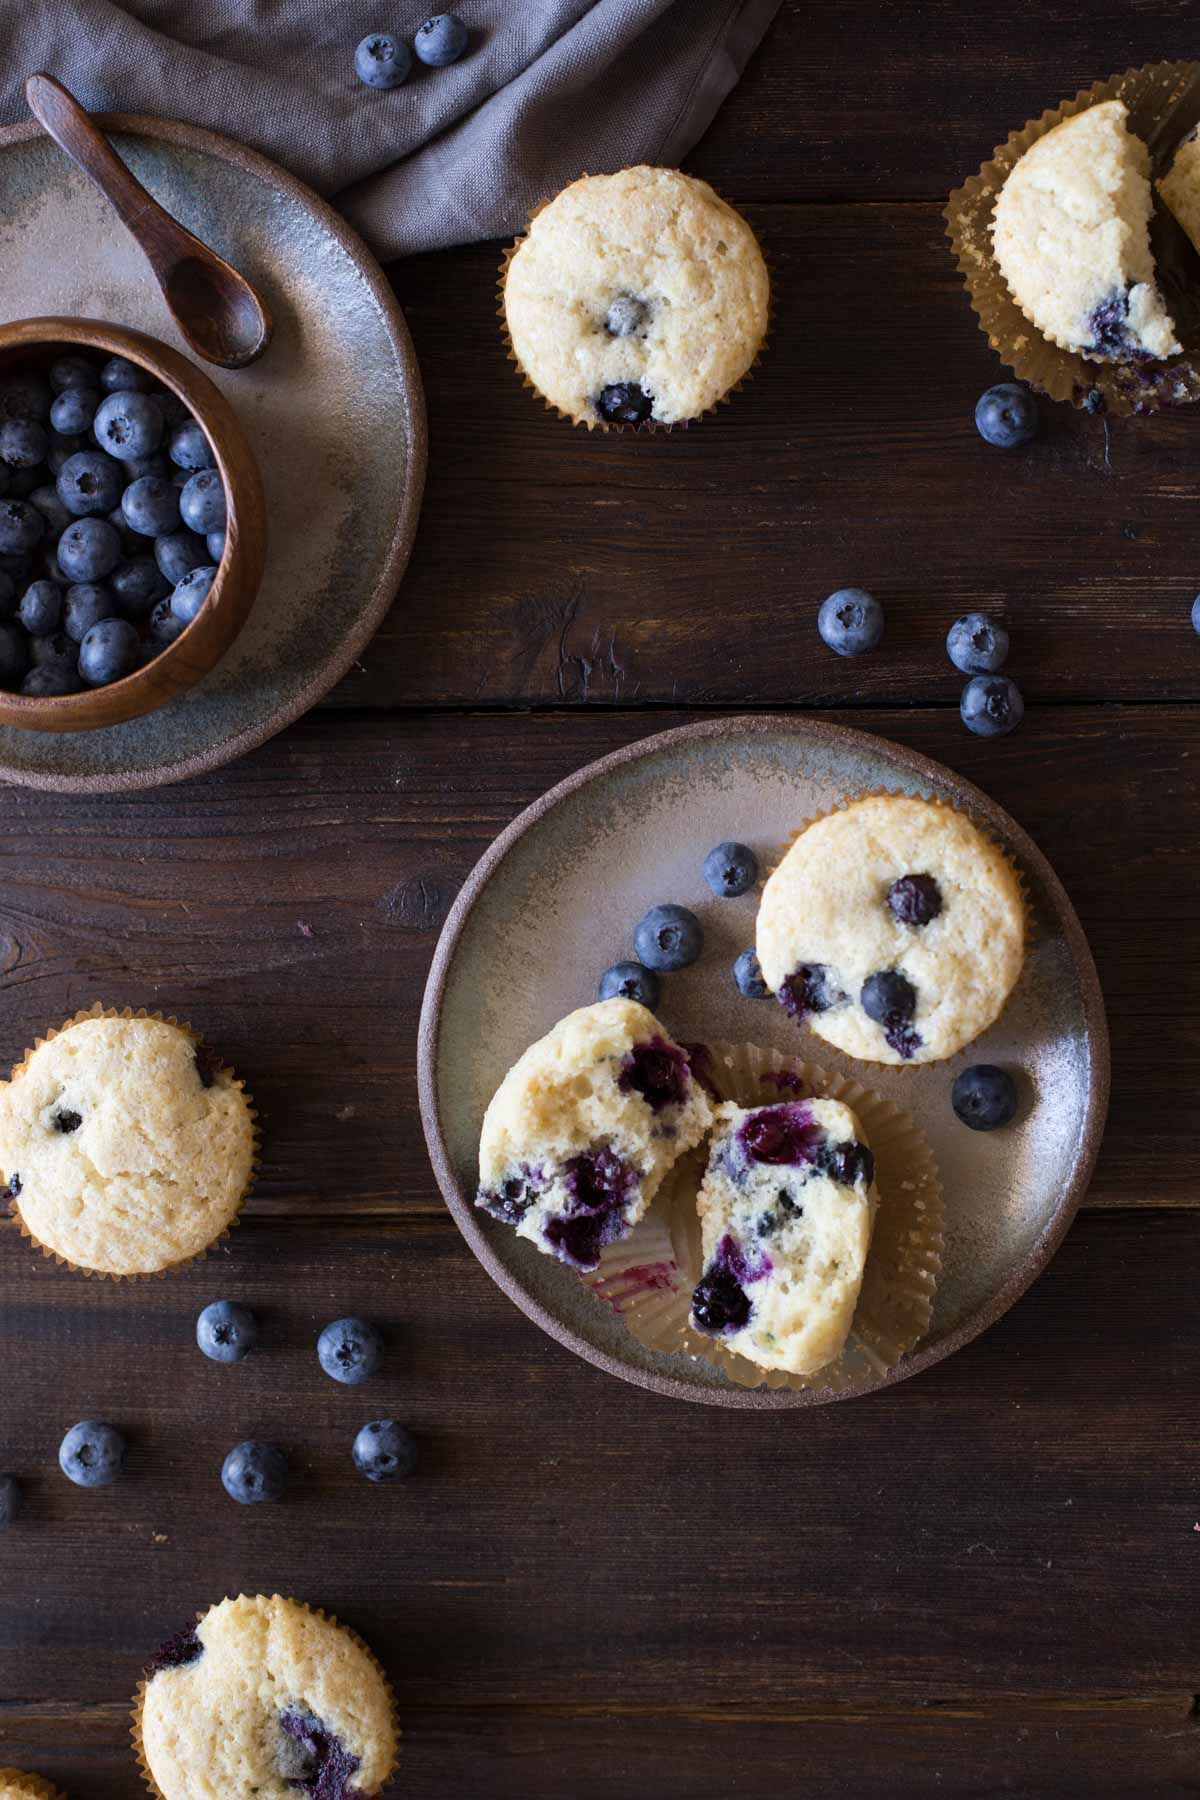 These sweet Vanilla Blueberry Buttermilk Muffins are so tender and creamy. You will LOVE them!